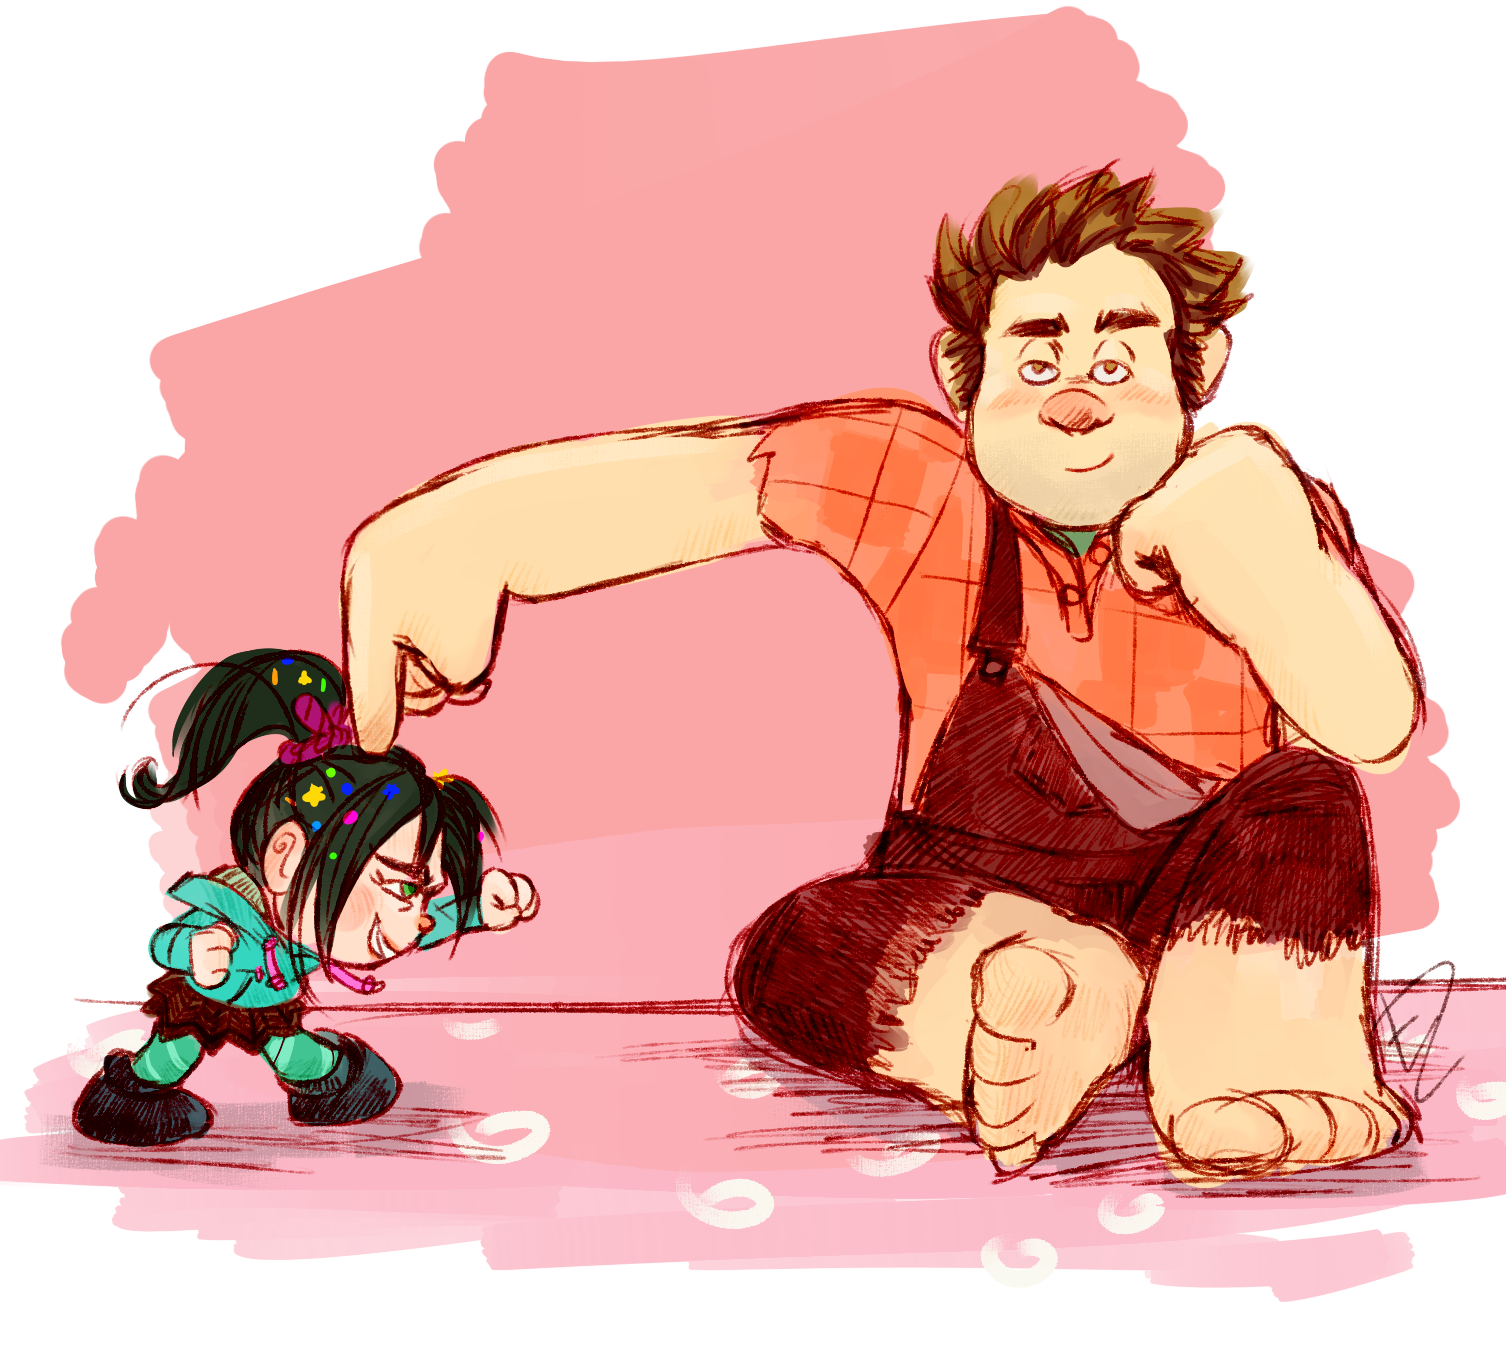 Ralph-and-Vanellope-wreck-it-ralph-34914709-1506-1368.png